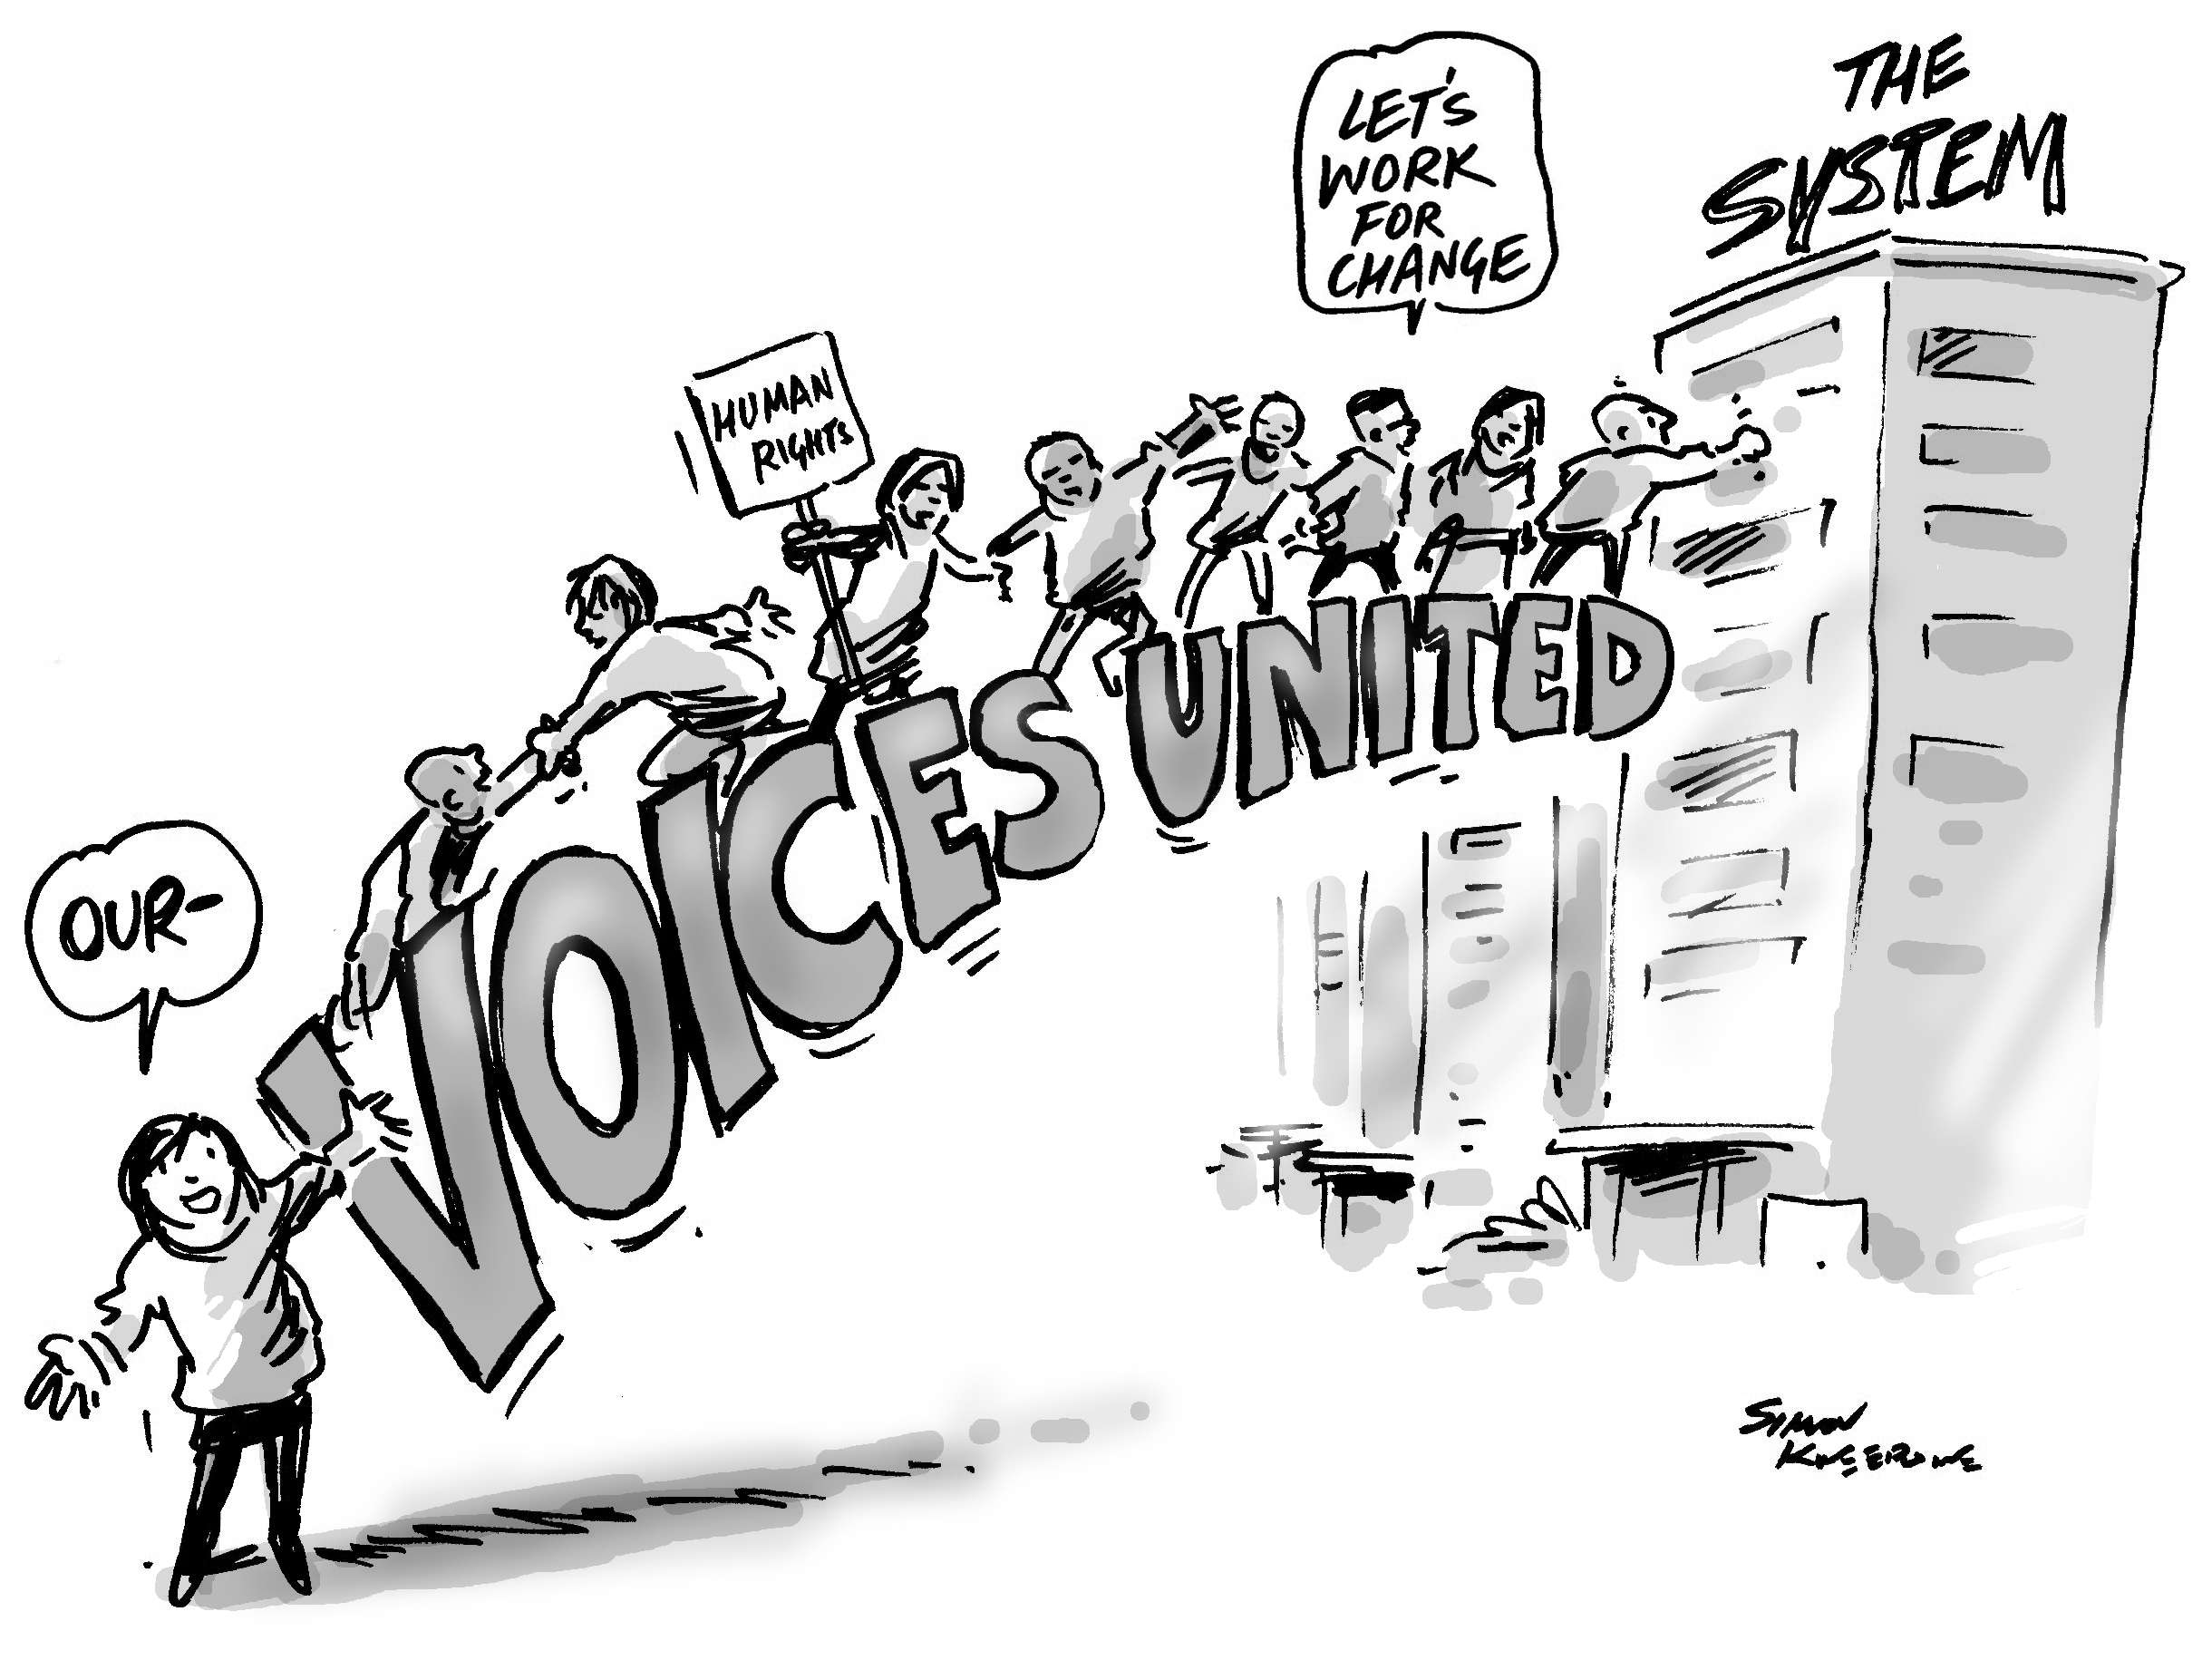 Our Voice cartoon shows people united to overcome the system